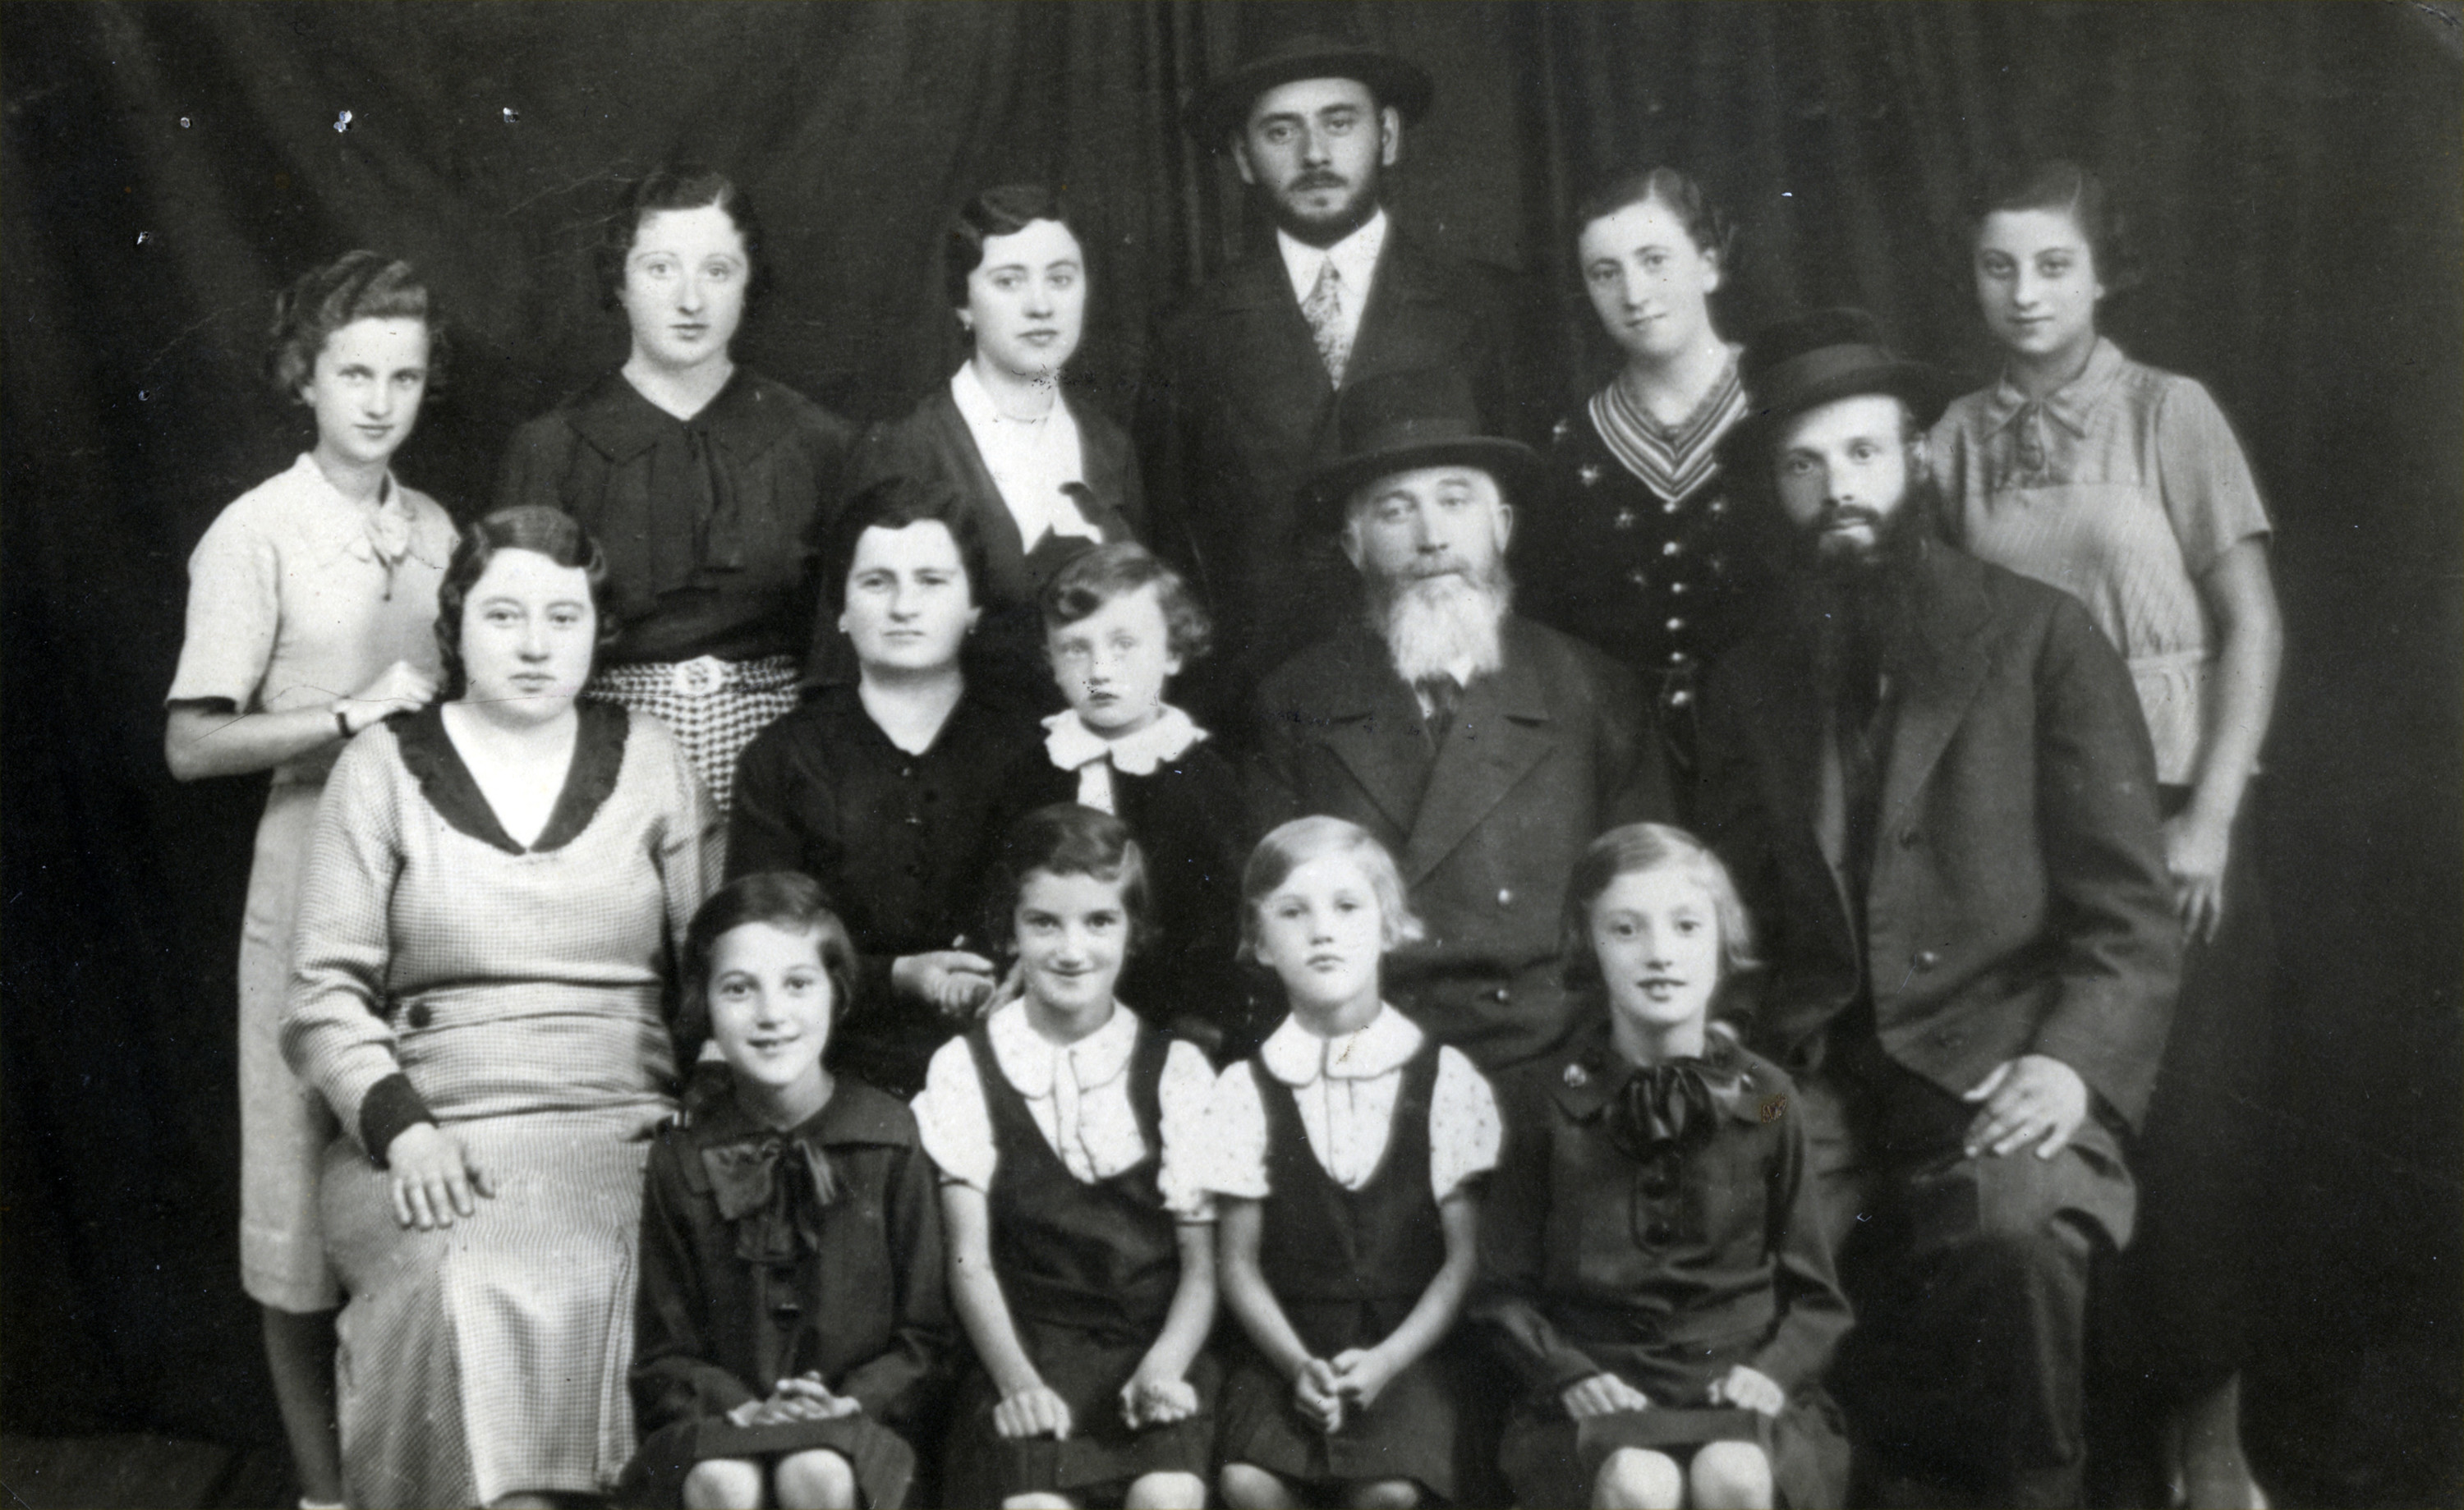 Group photograph of  the Scheiner family in Khust, Czechoslovakia.  Pictured are Lazar and Sharona Scheiner (middle row, fourth and second from the left). Their children are (back row, left to right) Bella, Manci, Berta , Yenu-Jacob, Flora, and Sidi (pictured in the middle row, far left).  Sidi's husband Yeheskel is pictued in the middle row, on the far right.  Berta's son, Liebiku is seated between Lazar and Sharona.  Seated in the front row are Sidi and Yeheskel's daughters Etu, Tuti, Malka, and Dvora.